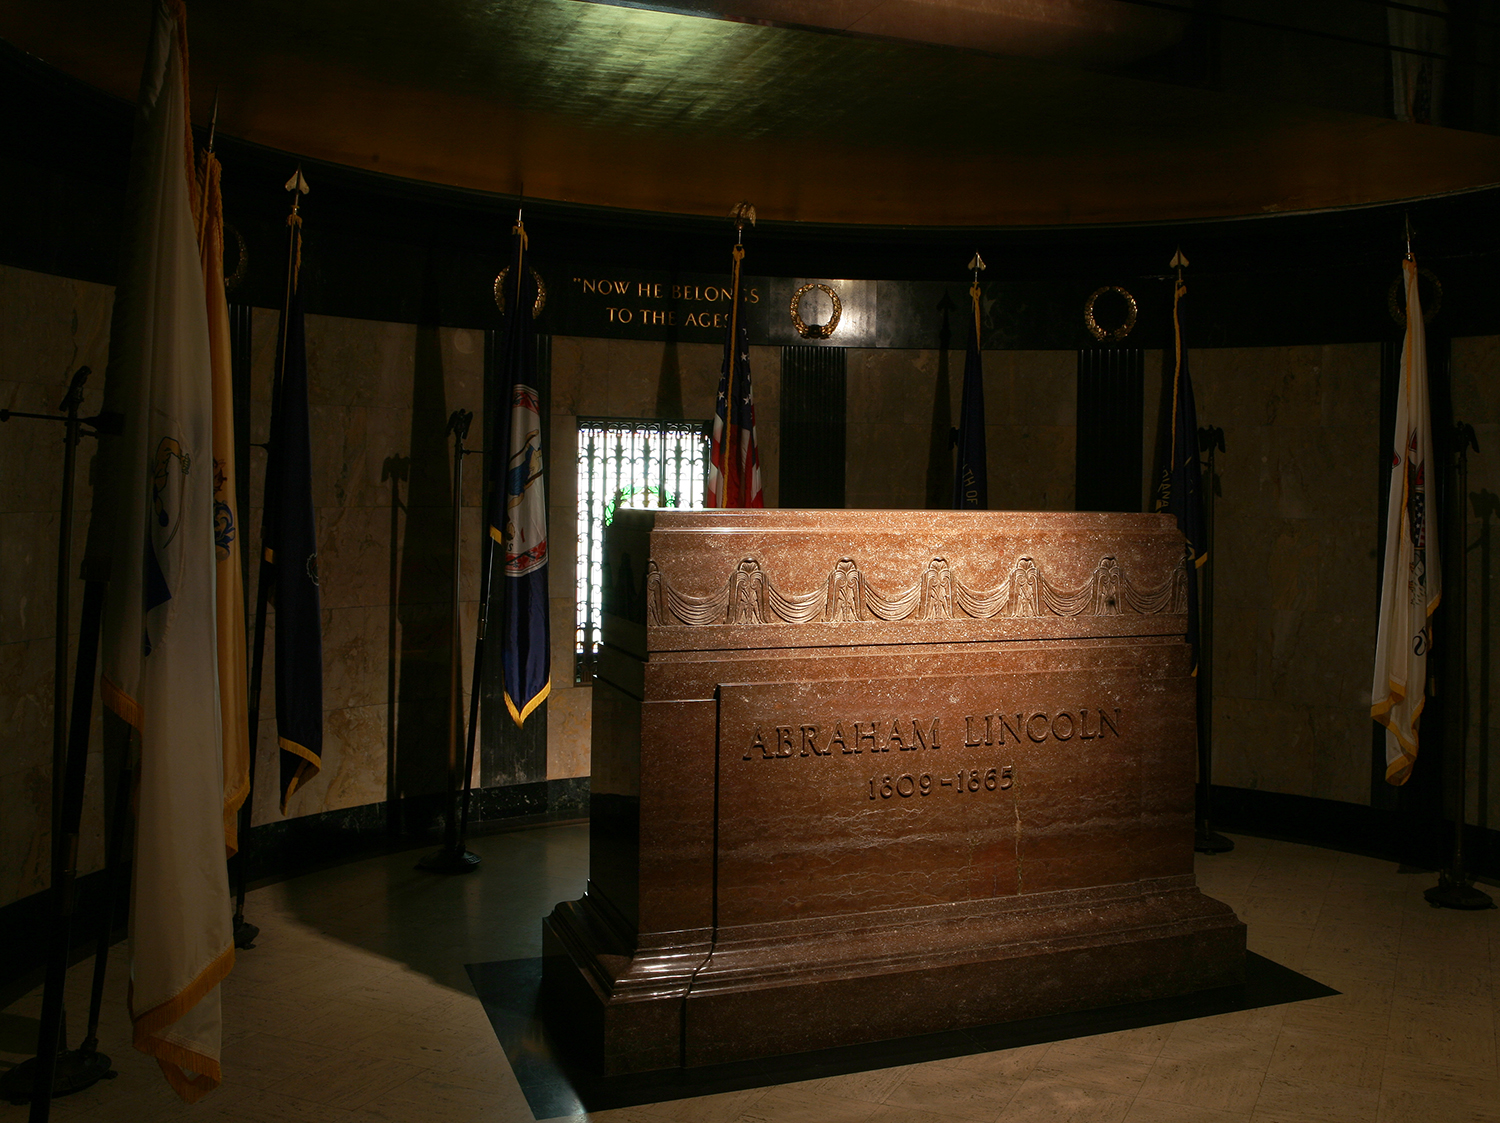 Lincoln's remains rest in a concrete vault ten feet below the marble floor of the burial chamber. A massive granite cenotaph marking the gravesite is flanked by the Presidential flag and flags of the states in which the Lincoln family resided. Rich Saal/The State Journal-Register